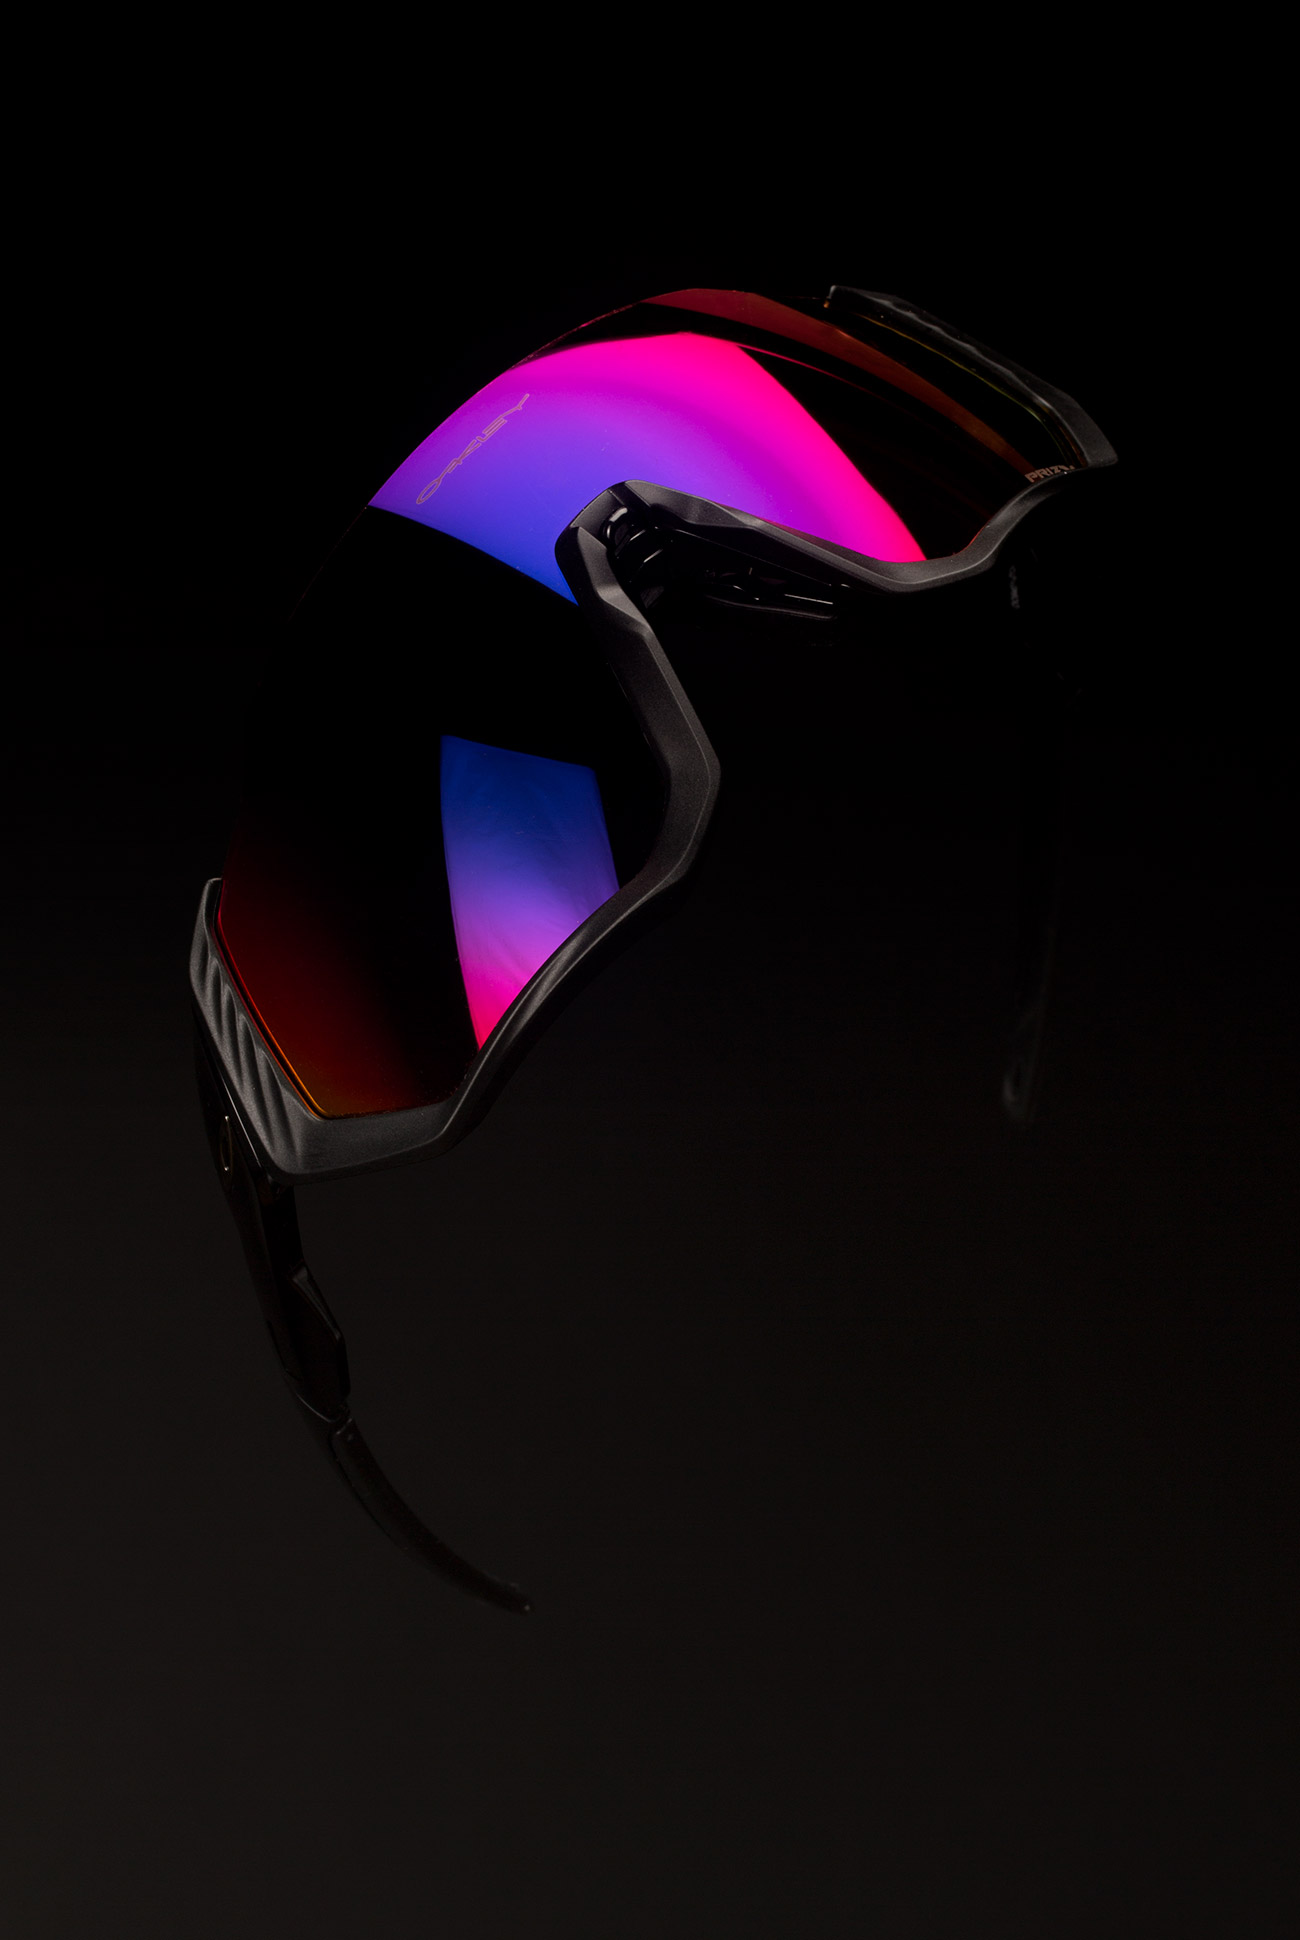 b2eac13cf7 Exclusive oakleys newest sunglasses are innovative jpg 1300x1940 Oakley  exclusive